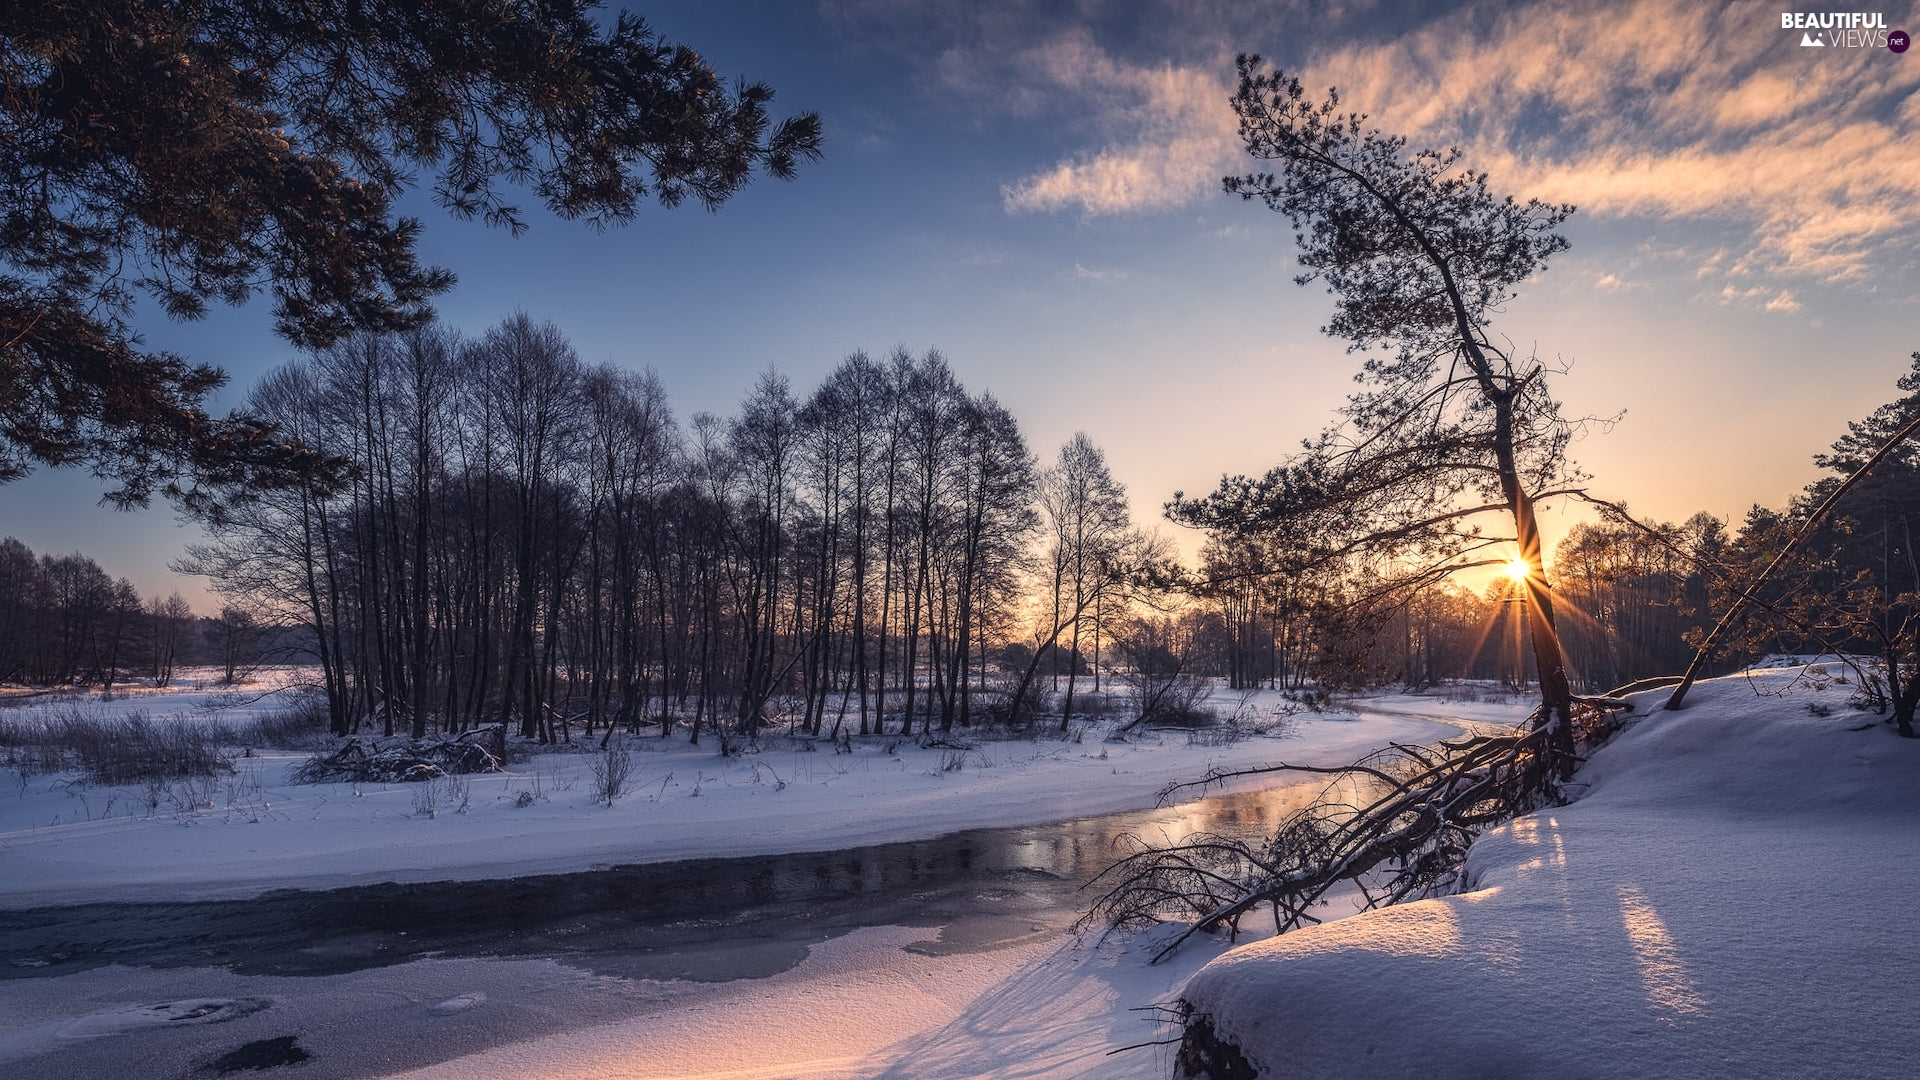 trees, rays of the Sun, River, snow, viewes, winter